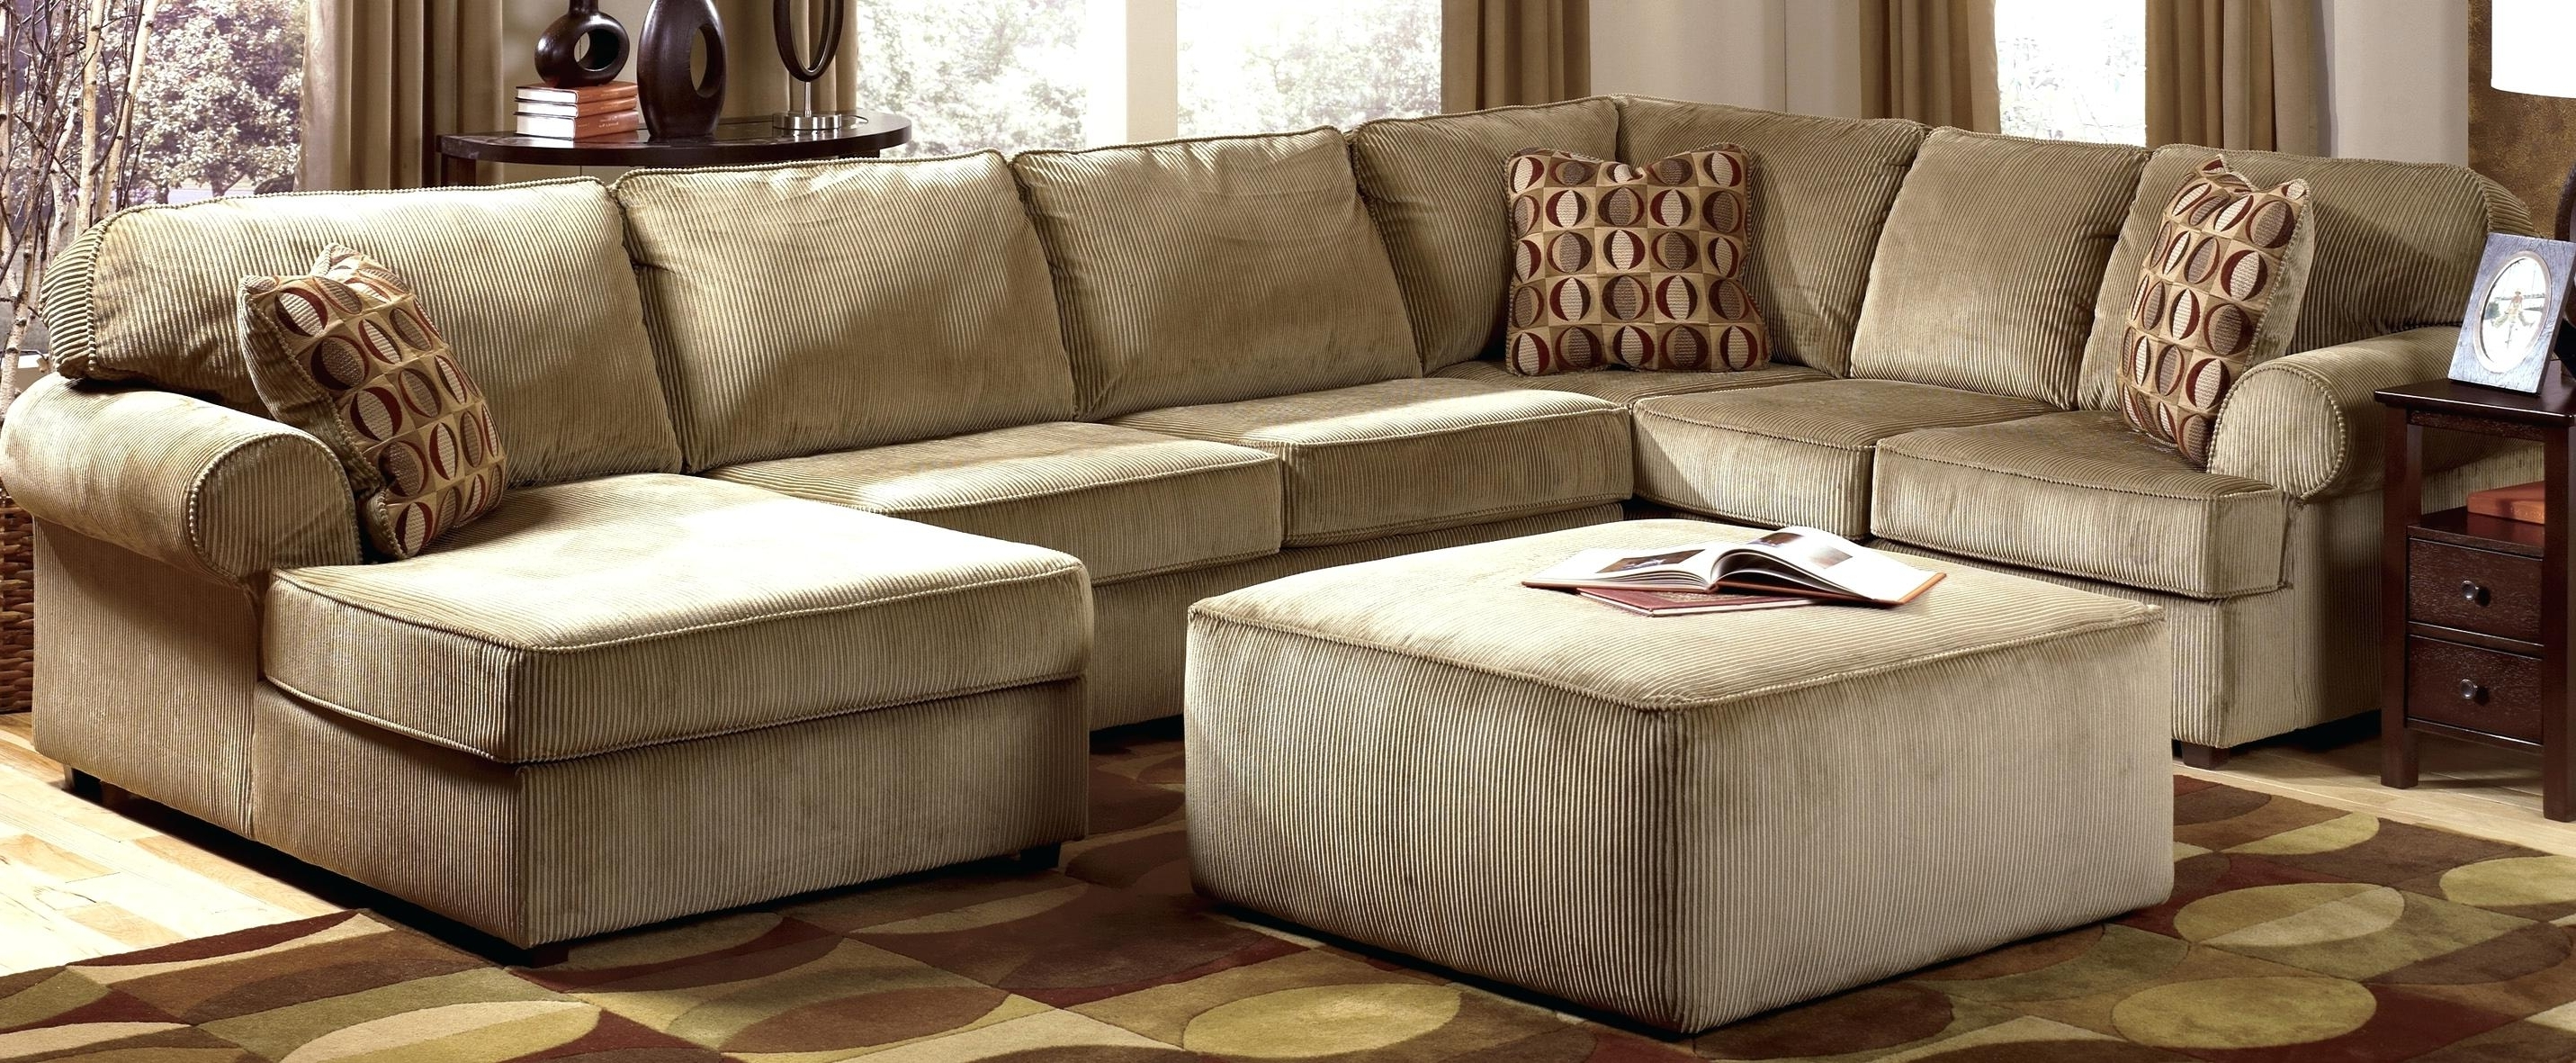 Well Known Sectional Sofas On Sale Sa Used For Ottawa Calgary Clearance For Kijiji Ottawa Sectional Sofas (View 8 of 15)